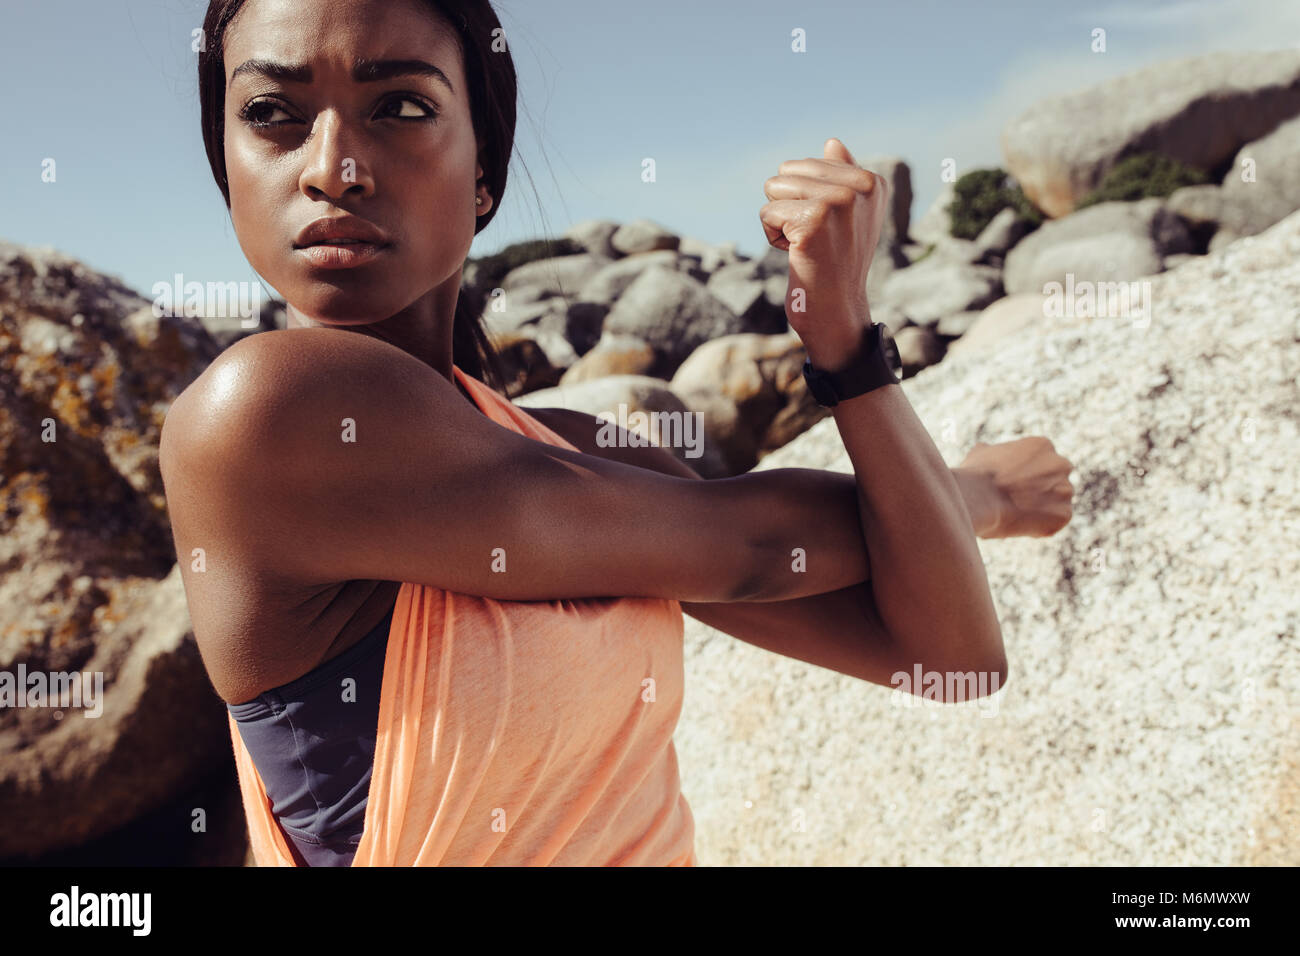 African woman stretching arms at the beach. Fitness female doing warmup workout and looking away outdoors. Closeup - Stock Image